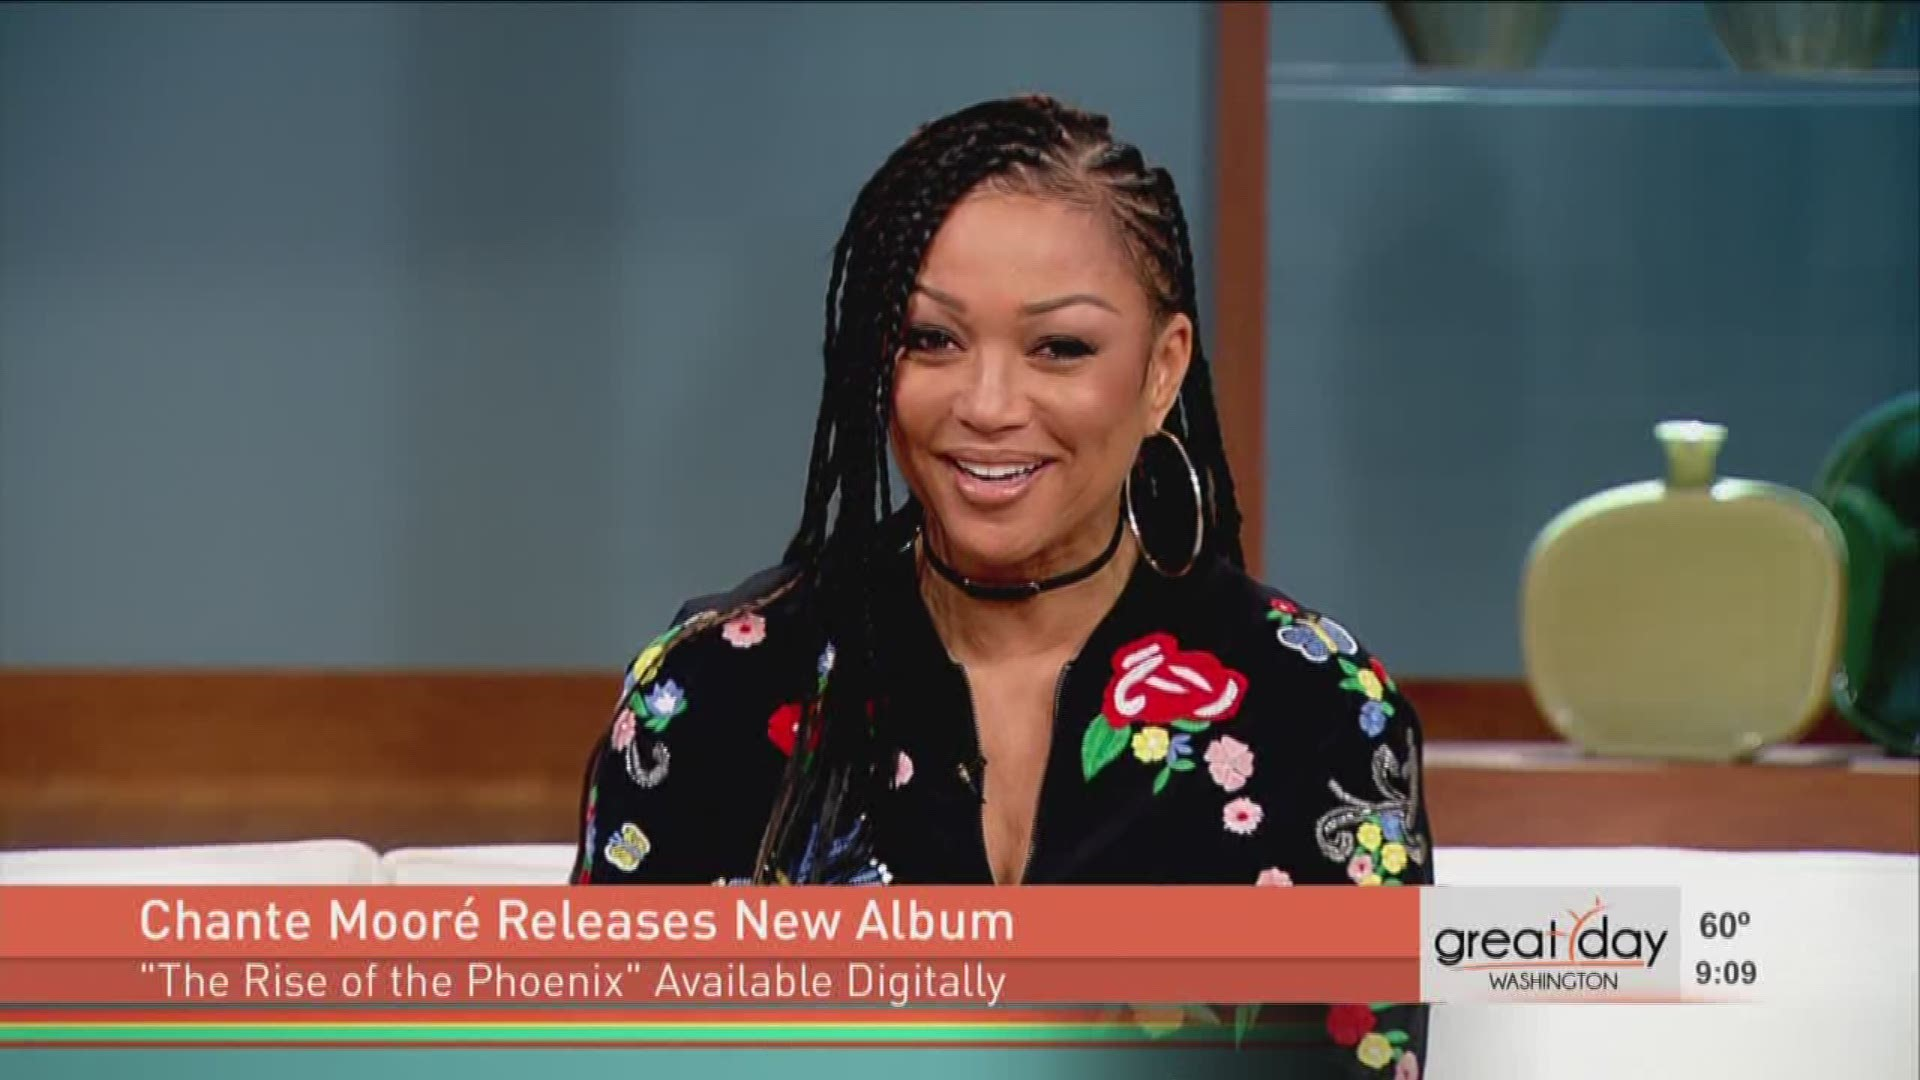 Grammy Nominated Singer Chante Moore Says New Album Is Very Personal Wusa9 Com